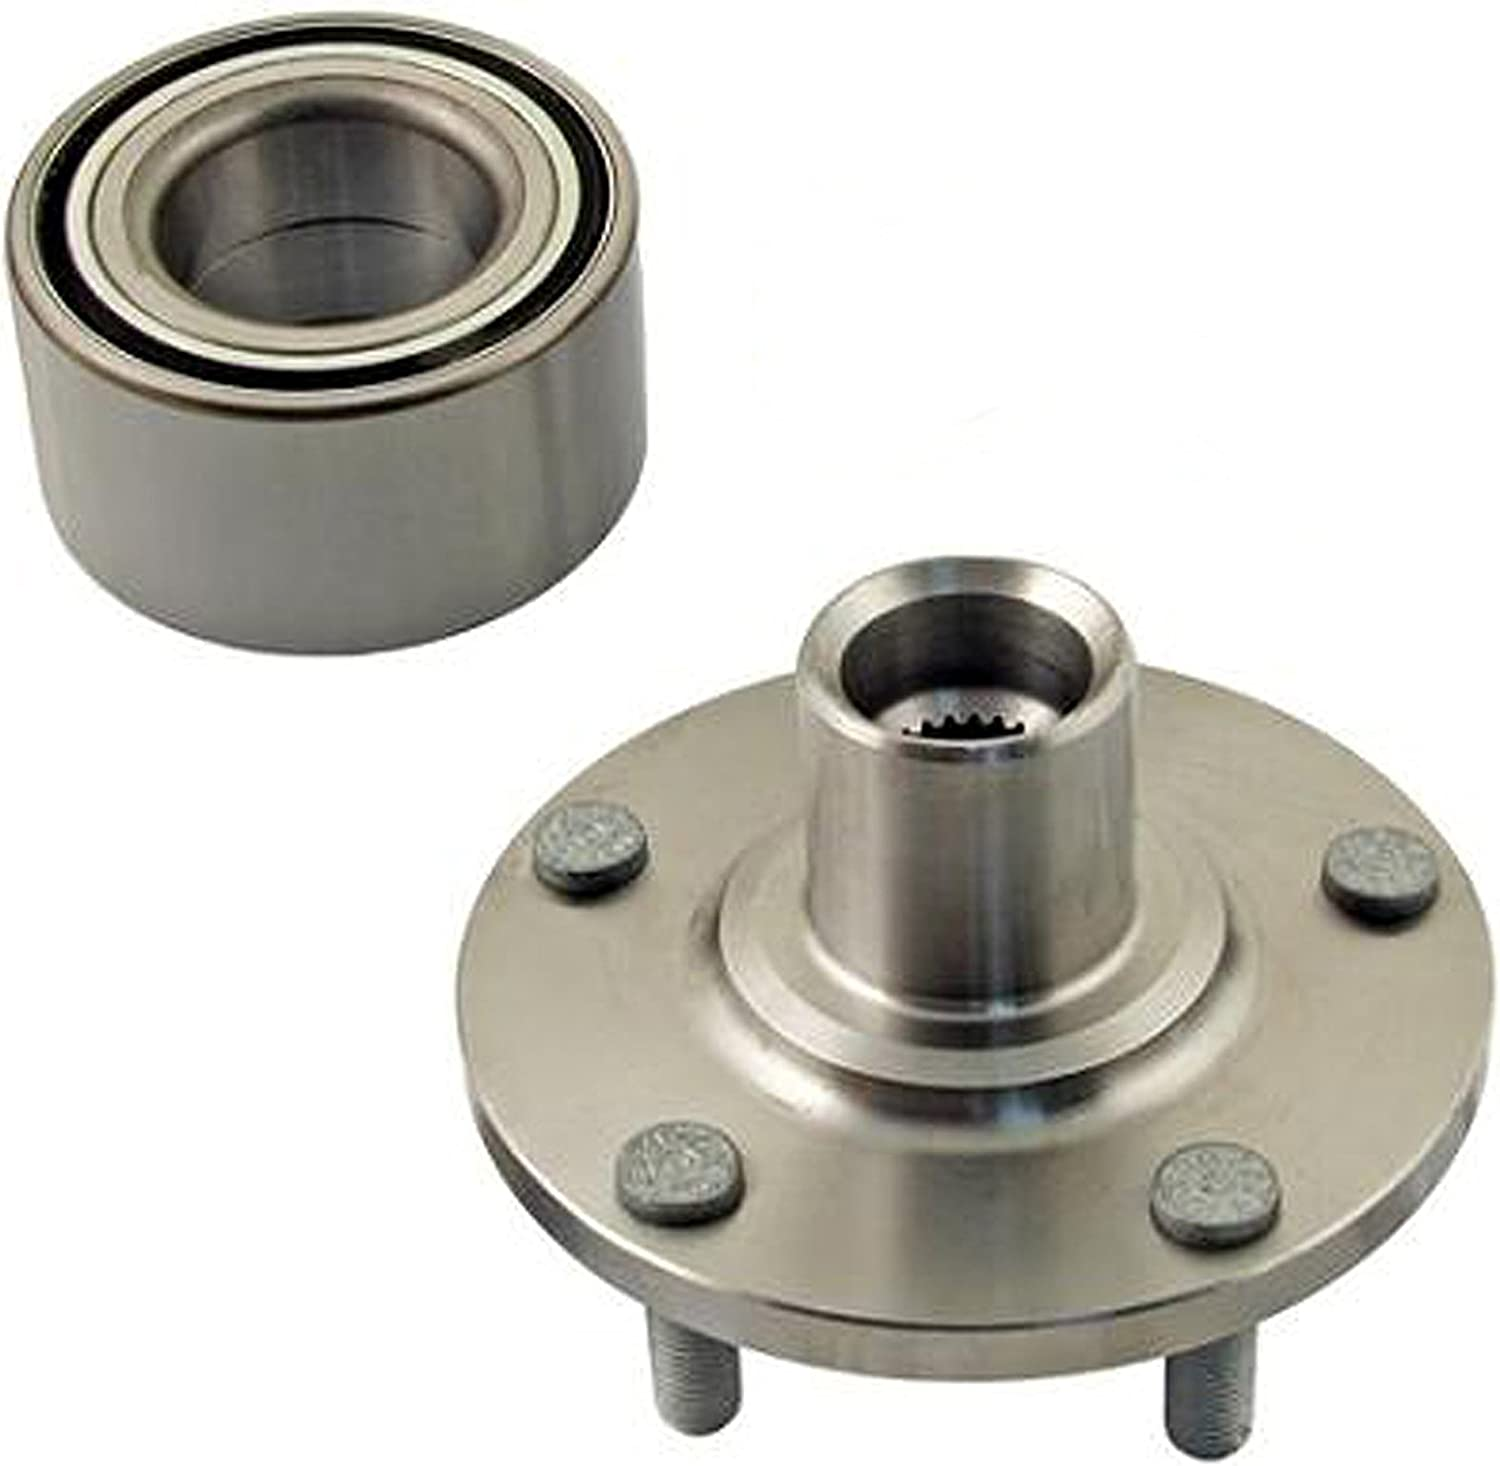 Accord Crosstour Front Wheel Hub Wheel Bearing Kit Left or Right Fits Acura TSX Honda Accord Crosstour D930006+NT510095